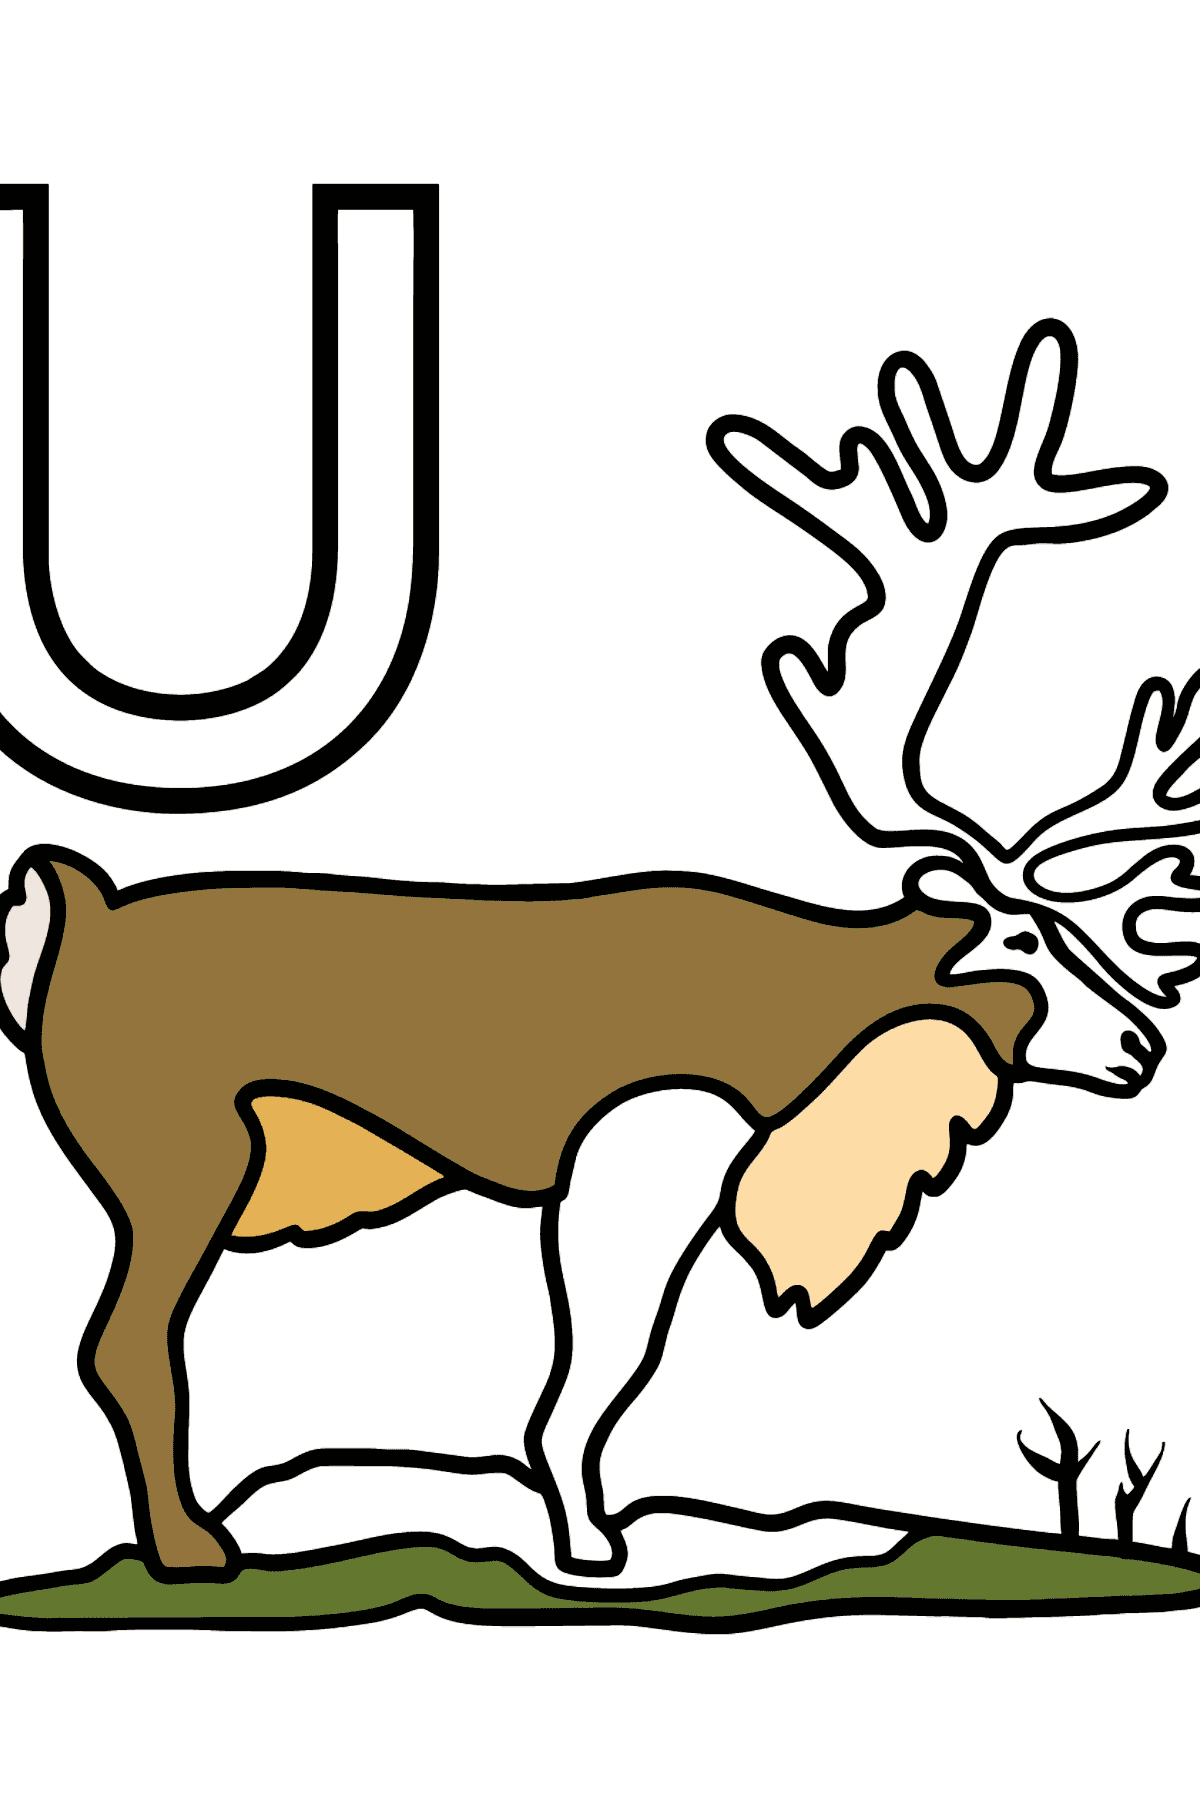 Spanish Letter U coloring pages - UAPITI - Coloring Pages for Kids